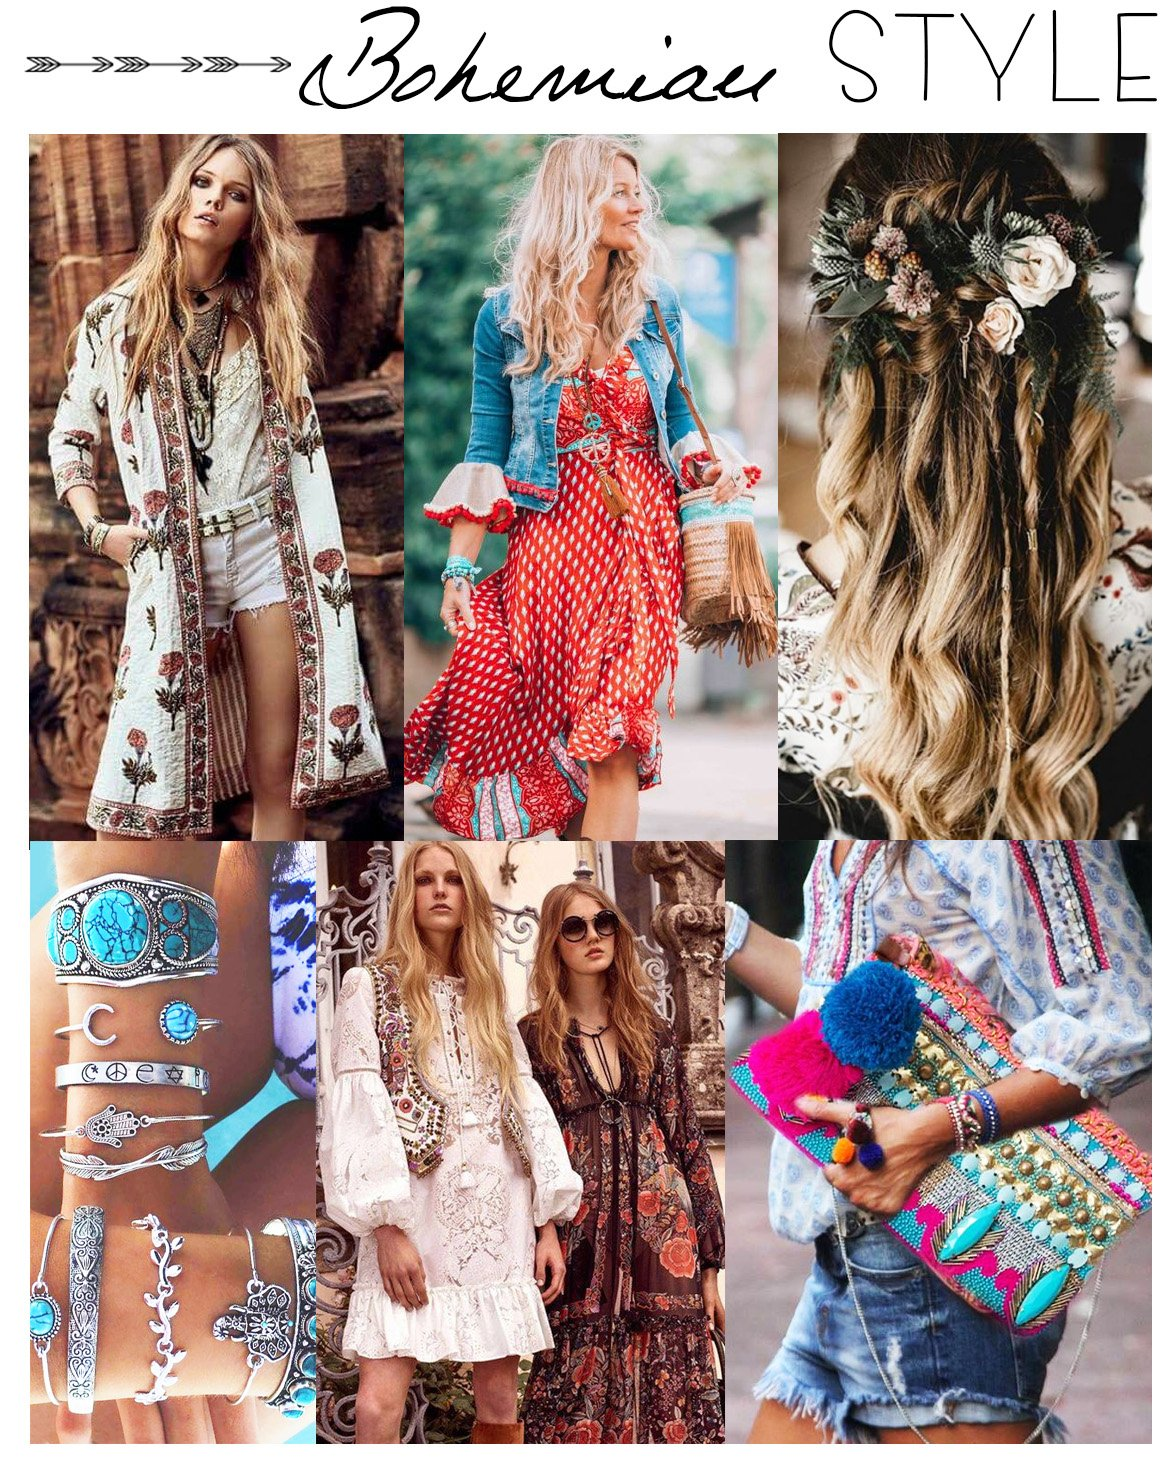 fcbbde3e24ec01 Bohemian Style: The Ultimate Guide and History | TPS